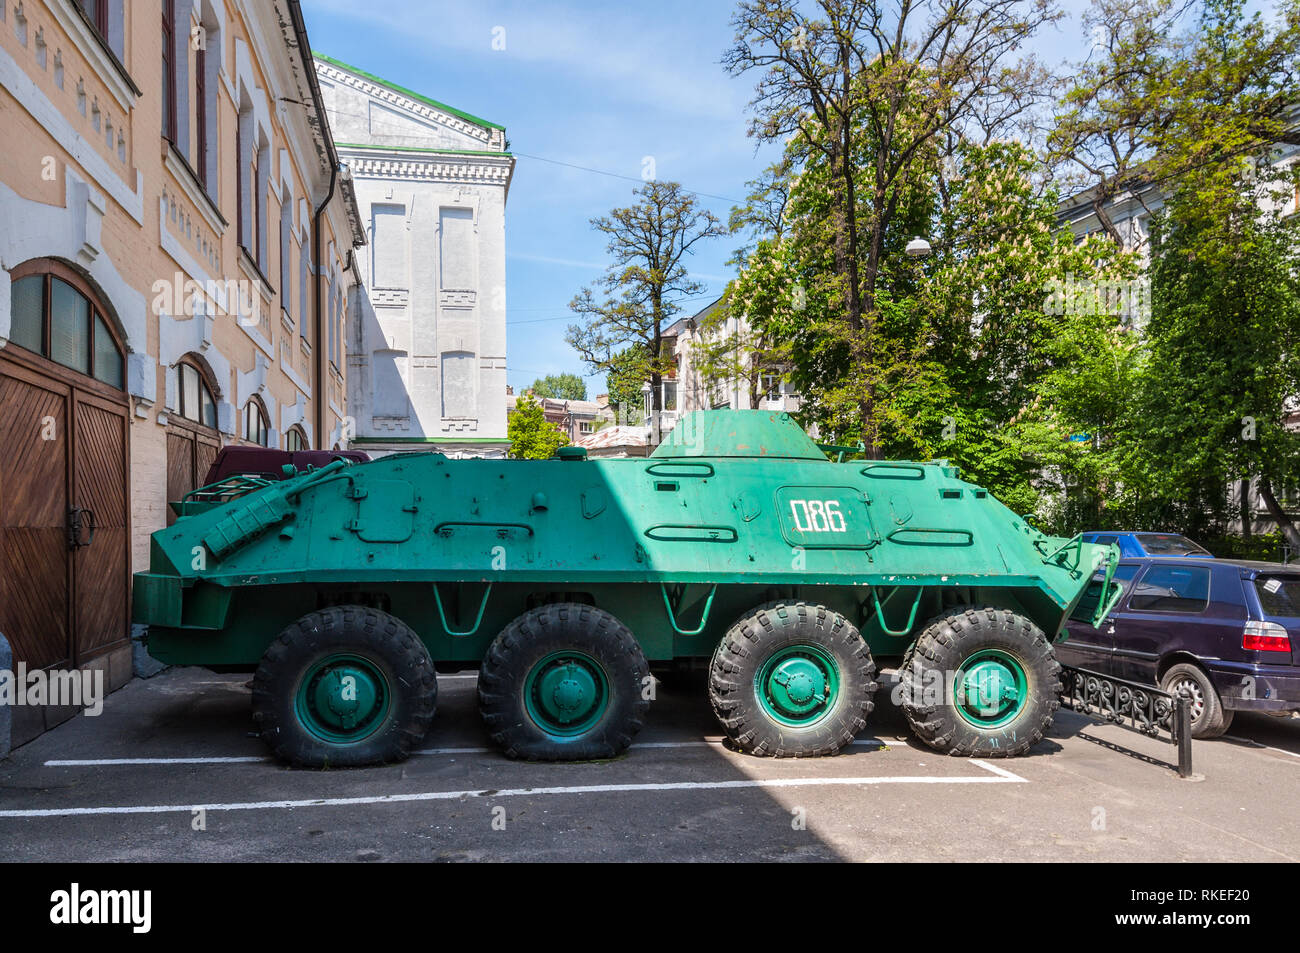 Kyiv, Ukraine - May 10, 2015: An armoured personnel carrier (APC) in front of the Ukrainian National Chornobyl Museum, dedicated to the 1986 Chernobyl - Stock Image